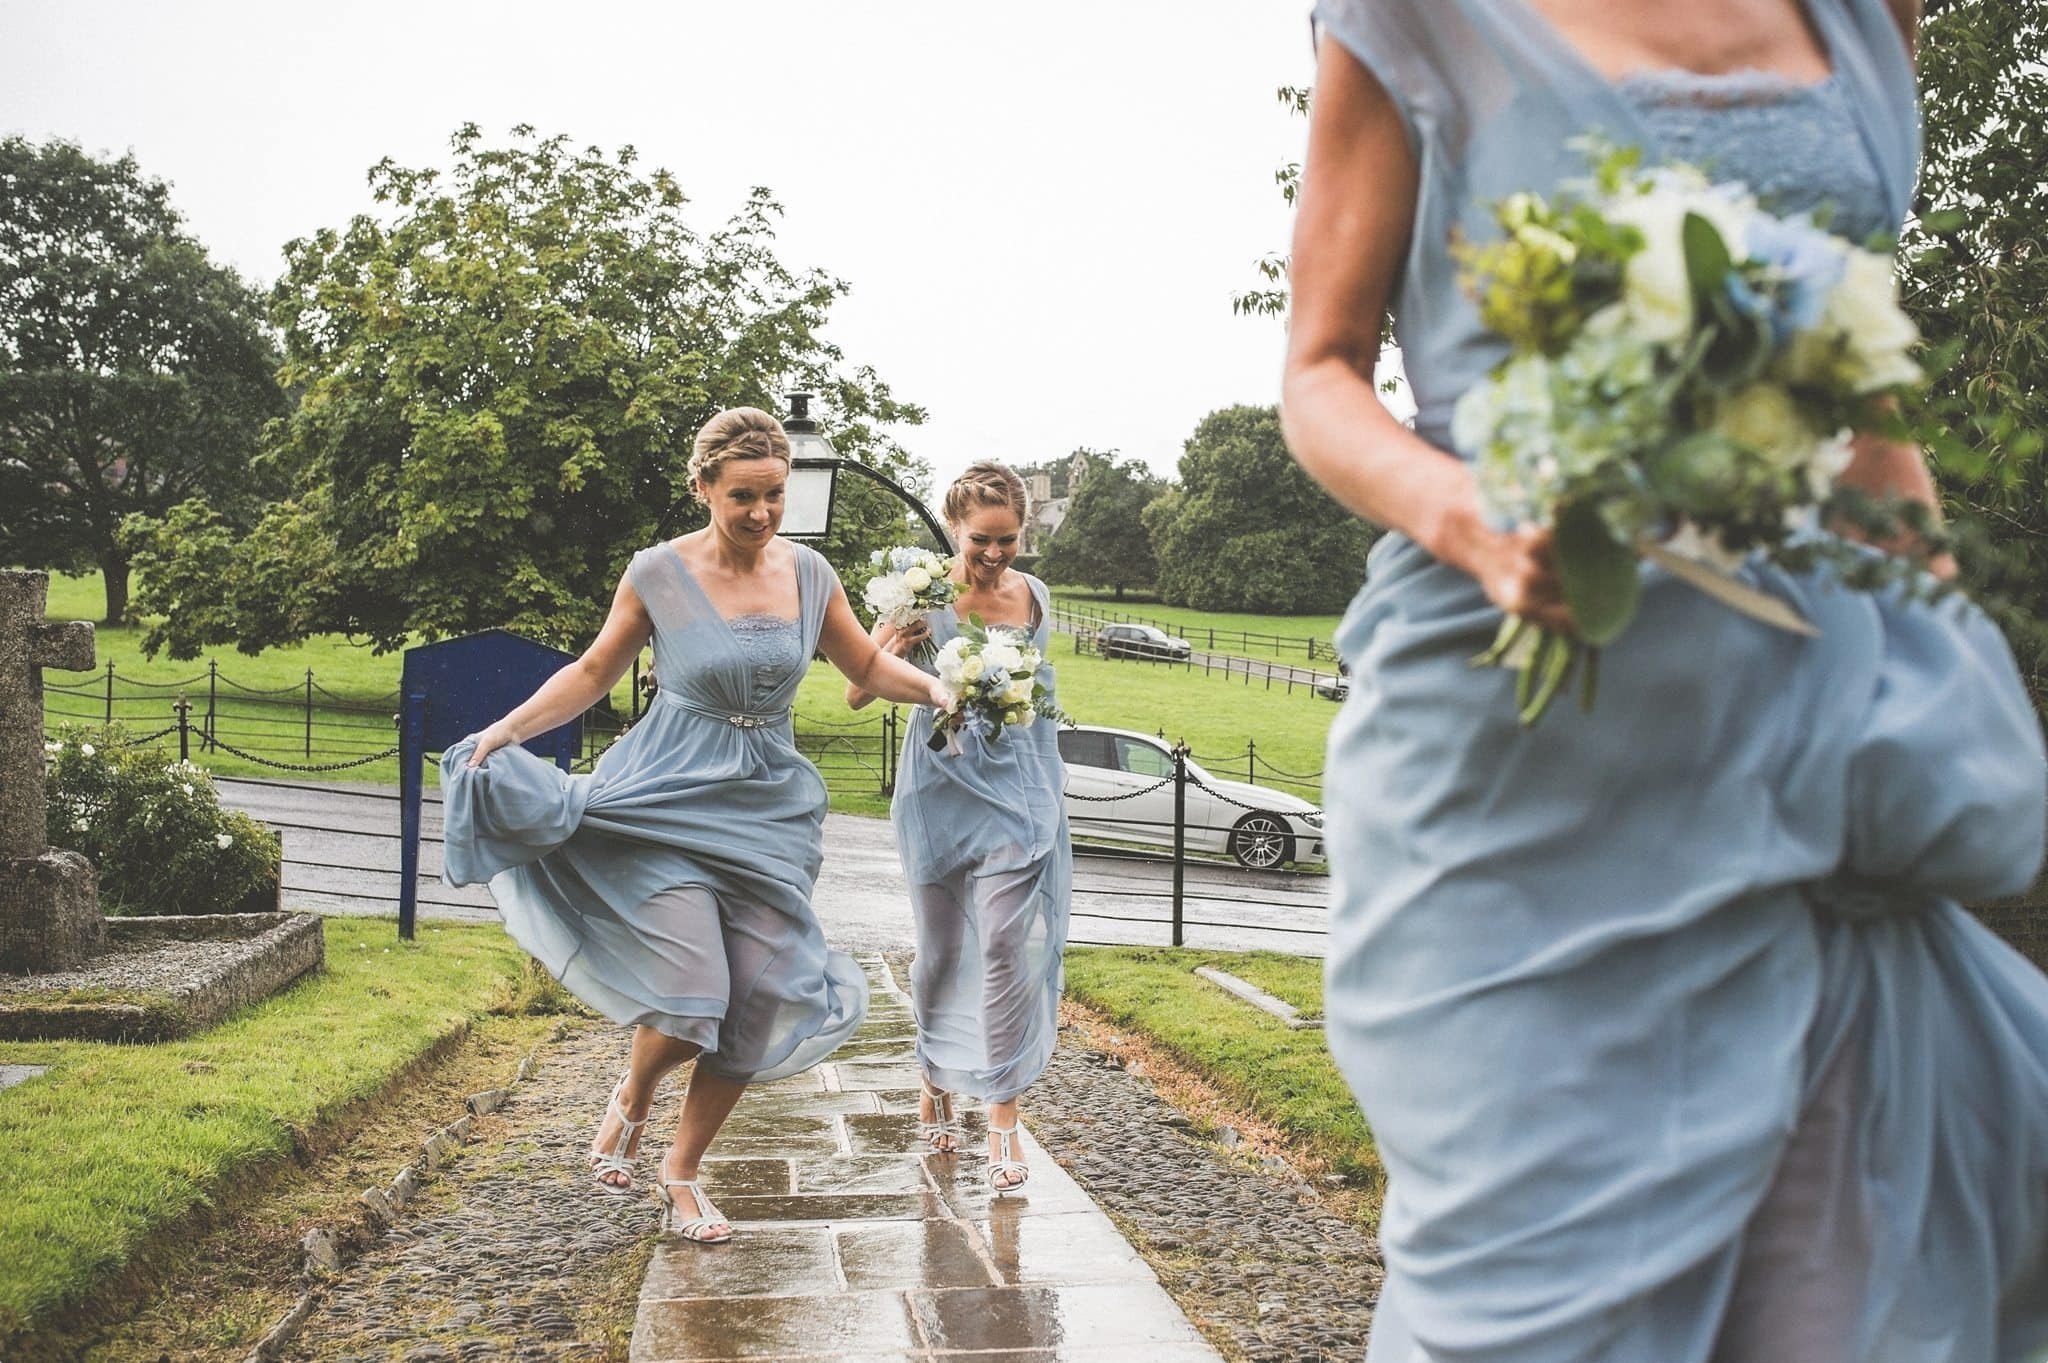 st-audries-park-wedding-maria-assia-photography-239